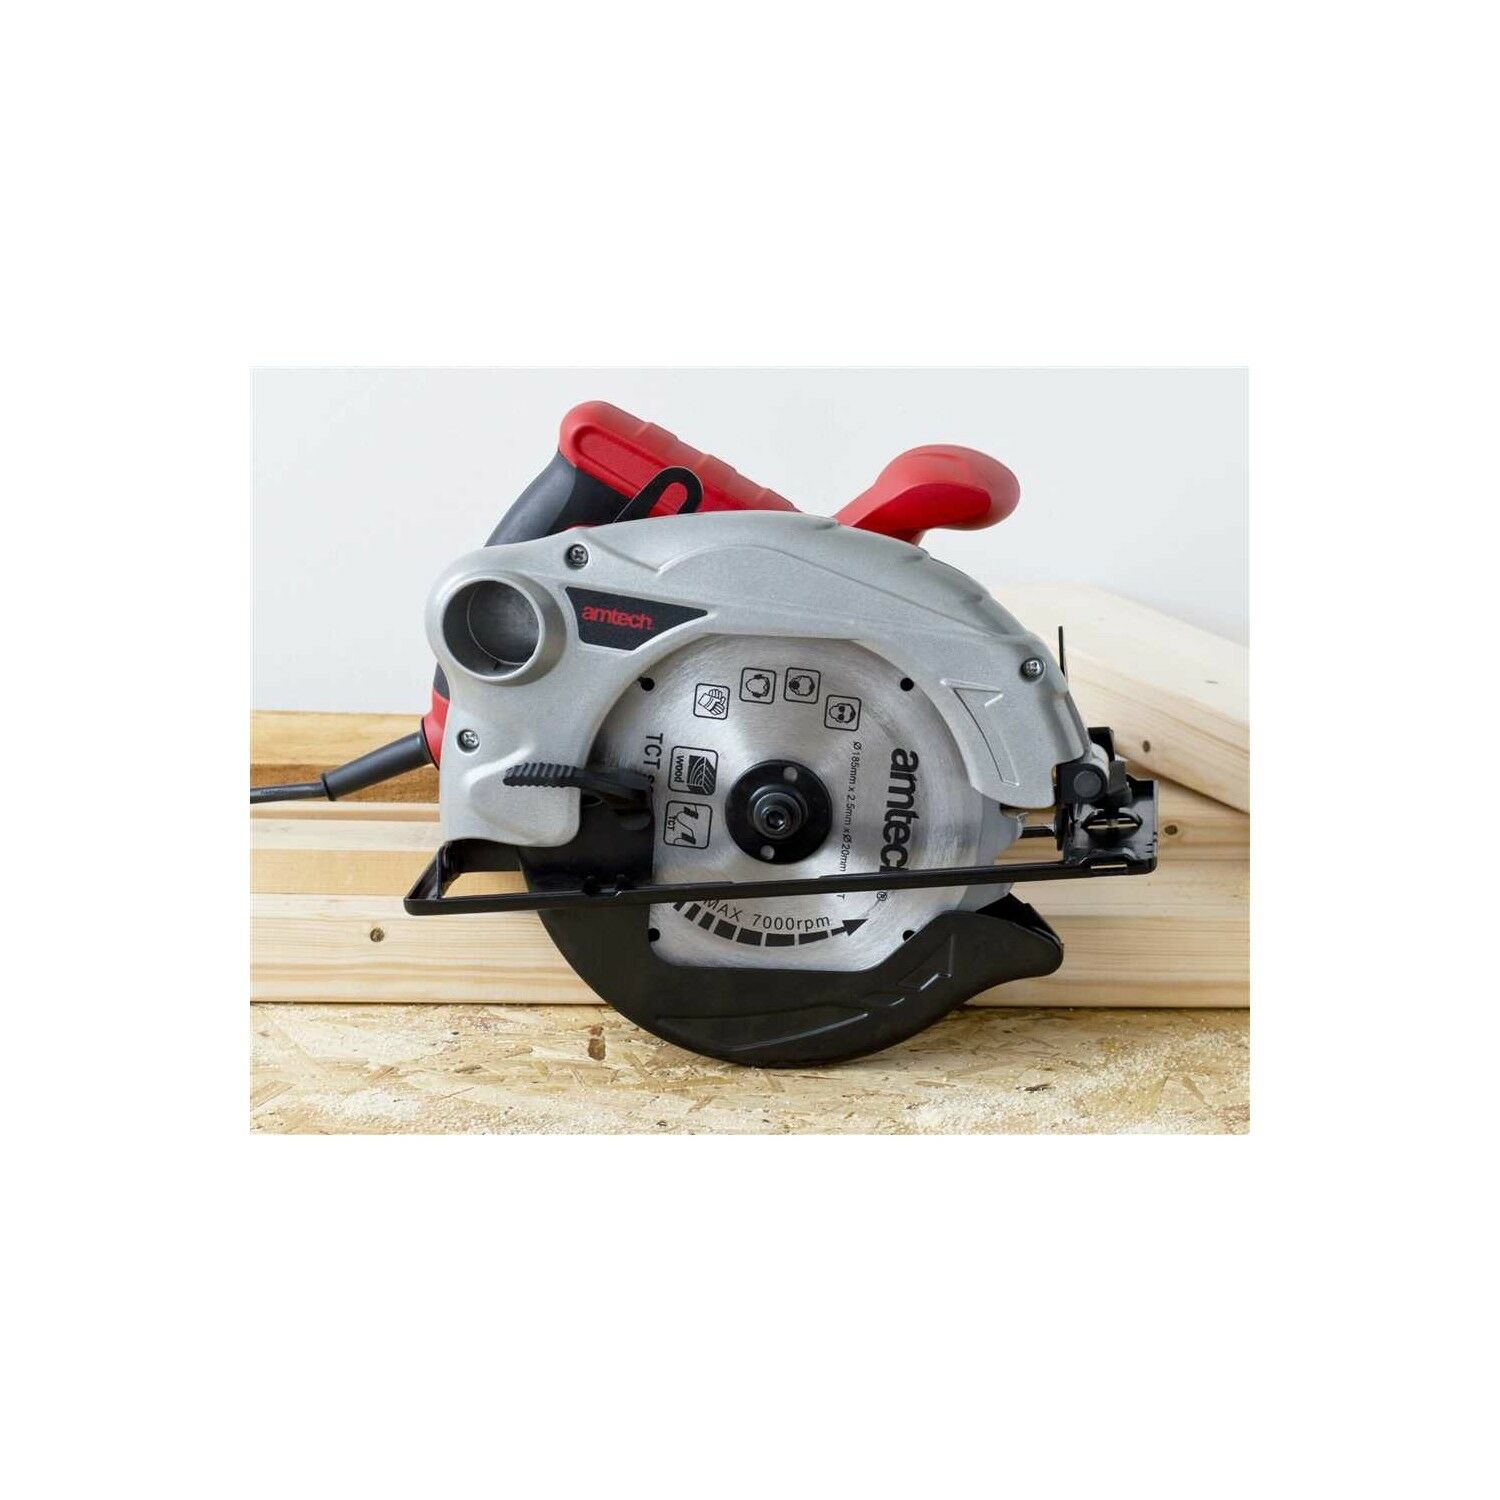 1300W CIRCULAR SAW 185MM 230V 230V 230V 0-45° BEVEL + 24T BLADE CUTTING HEAVY DUTY AMTECH cf4a75